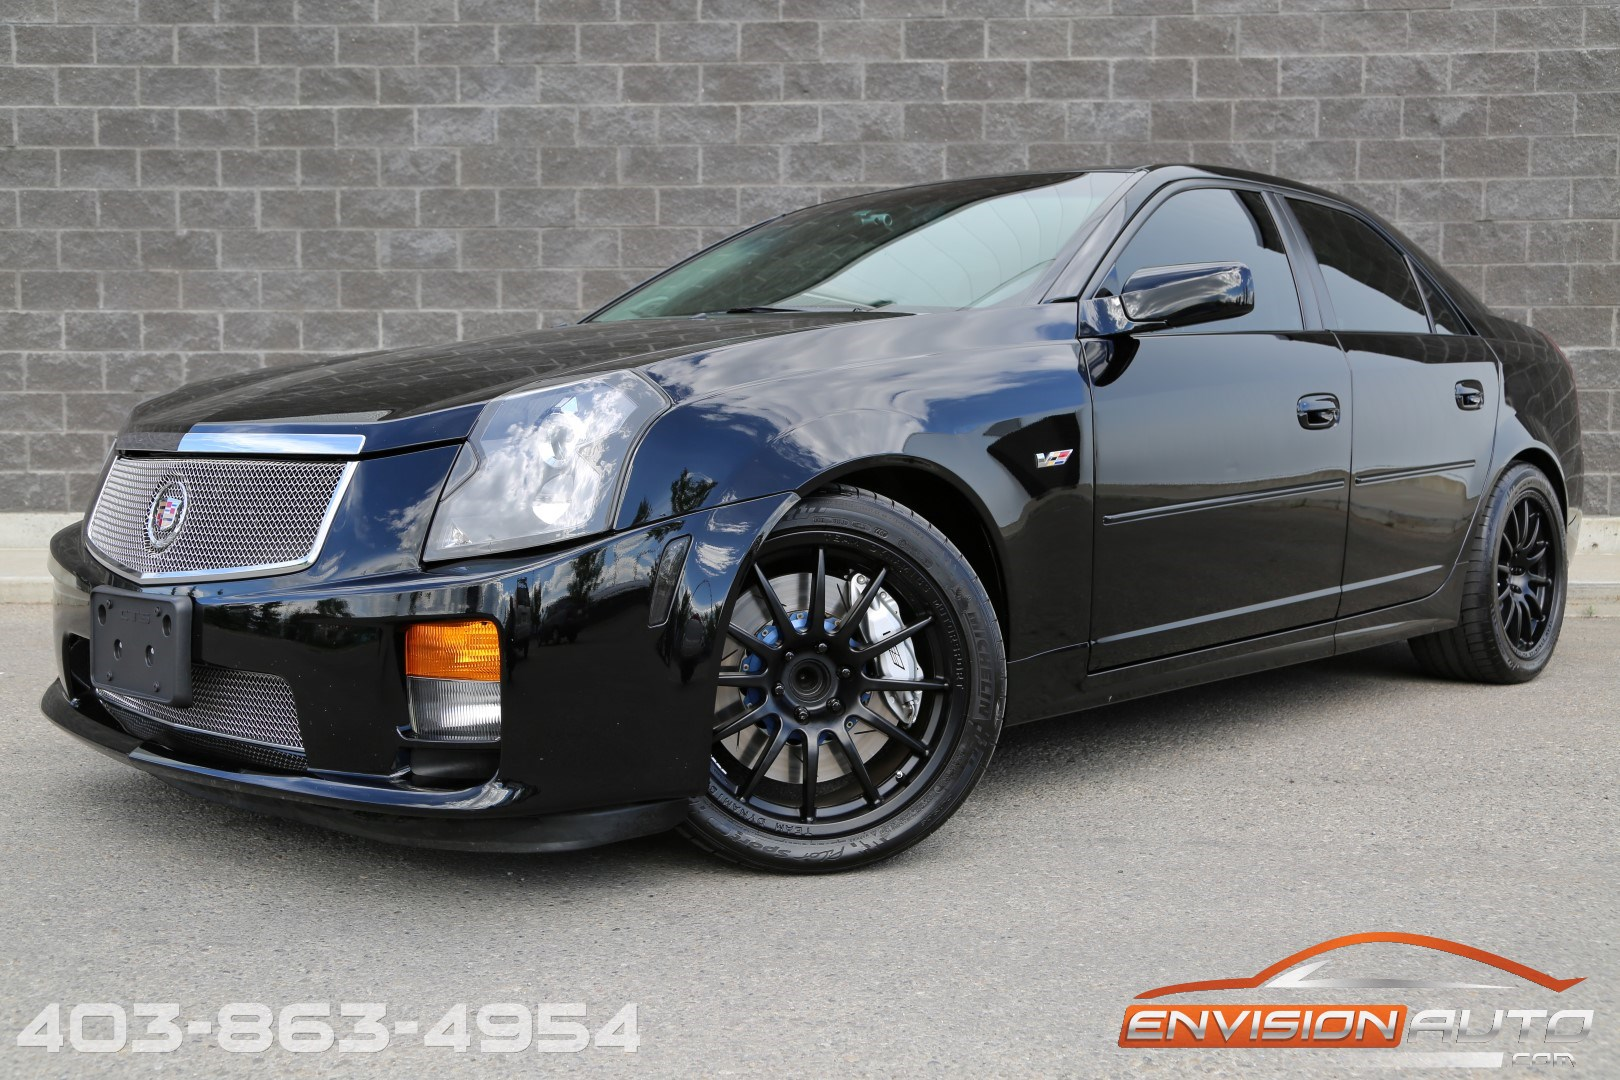 2005 Cadillac Cts V Sedan 6 Speed Manual 470 Rwhp